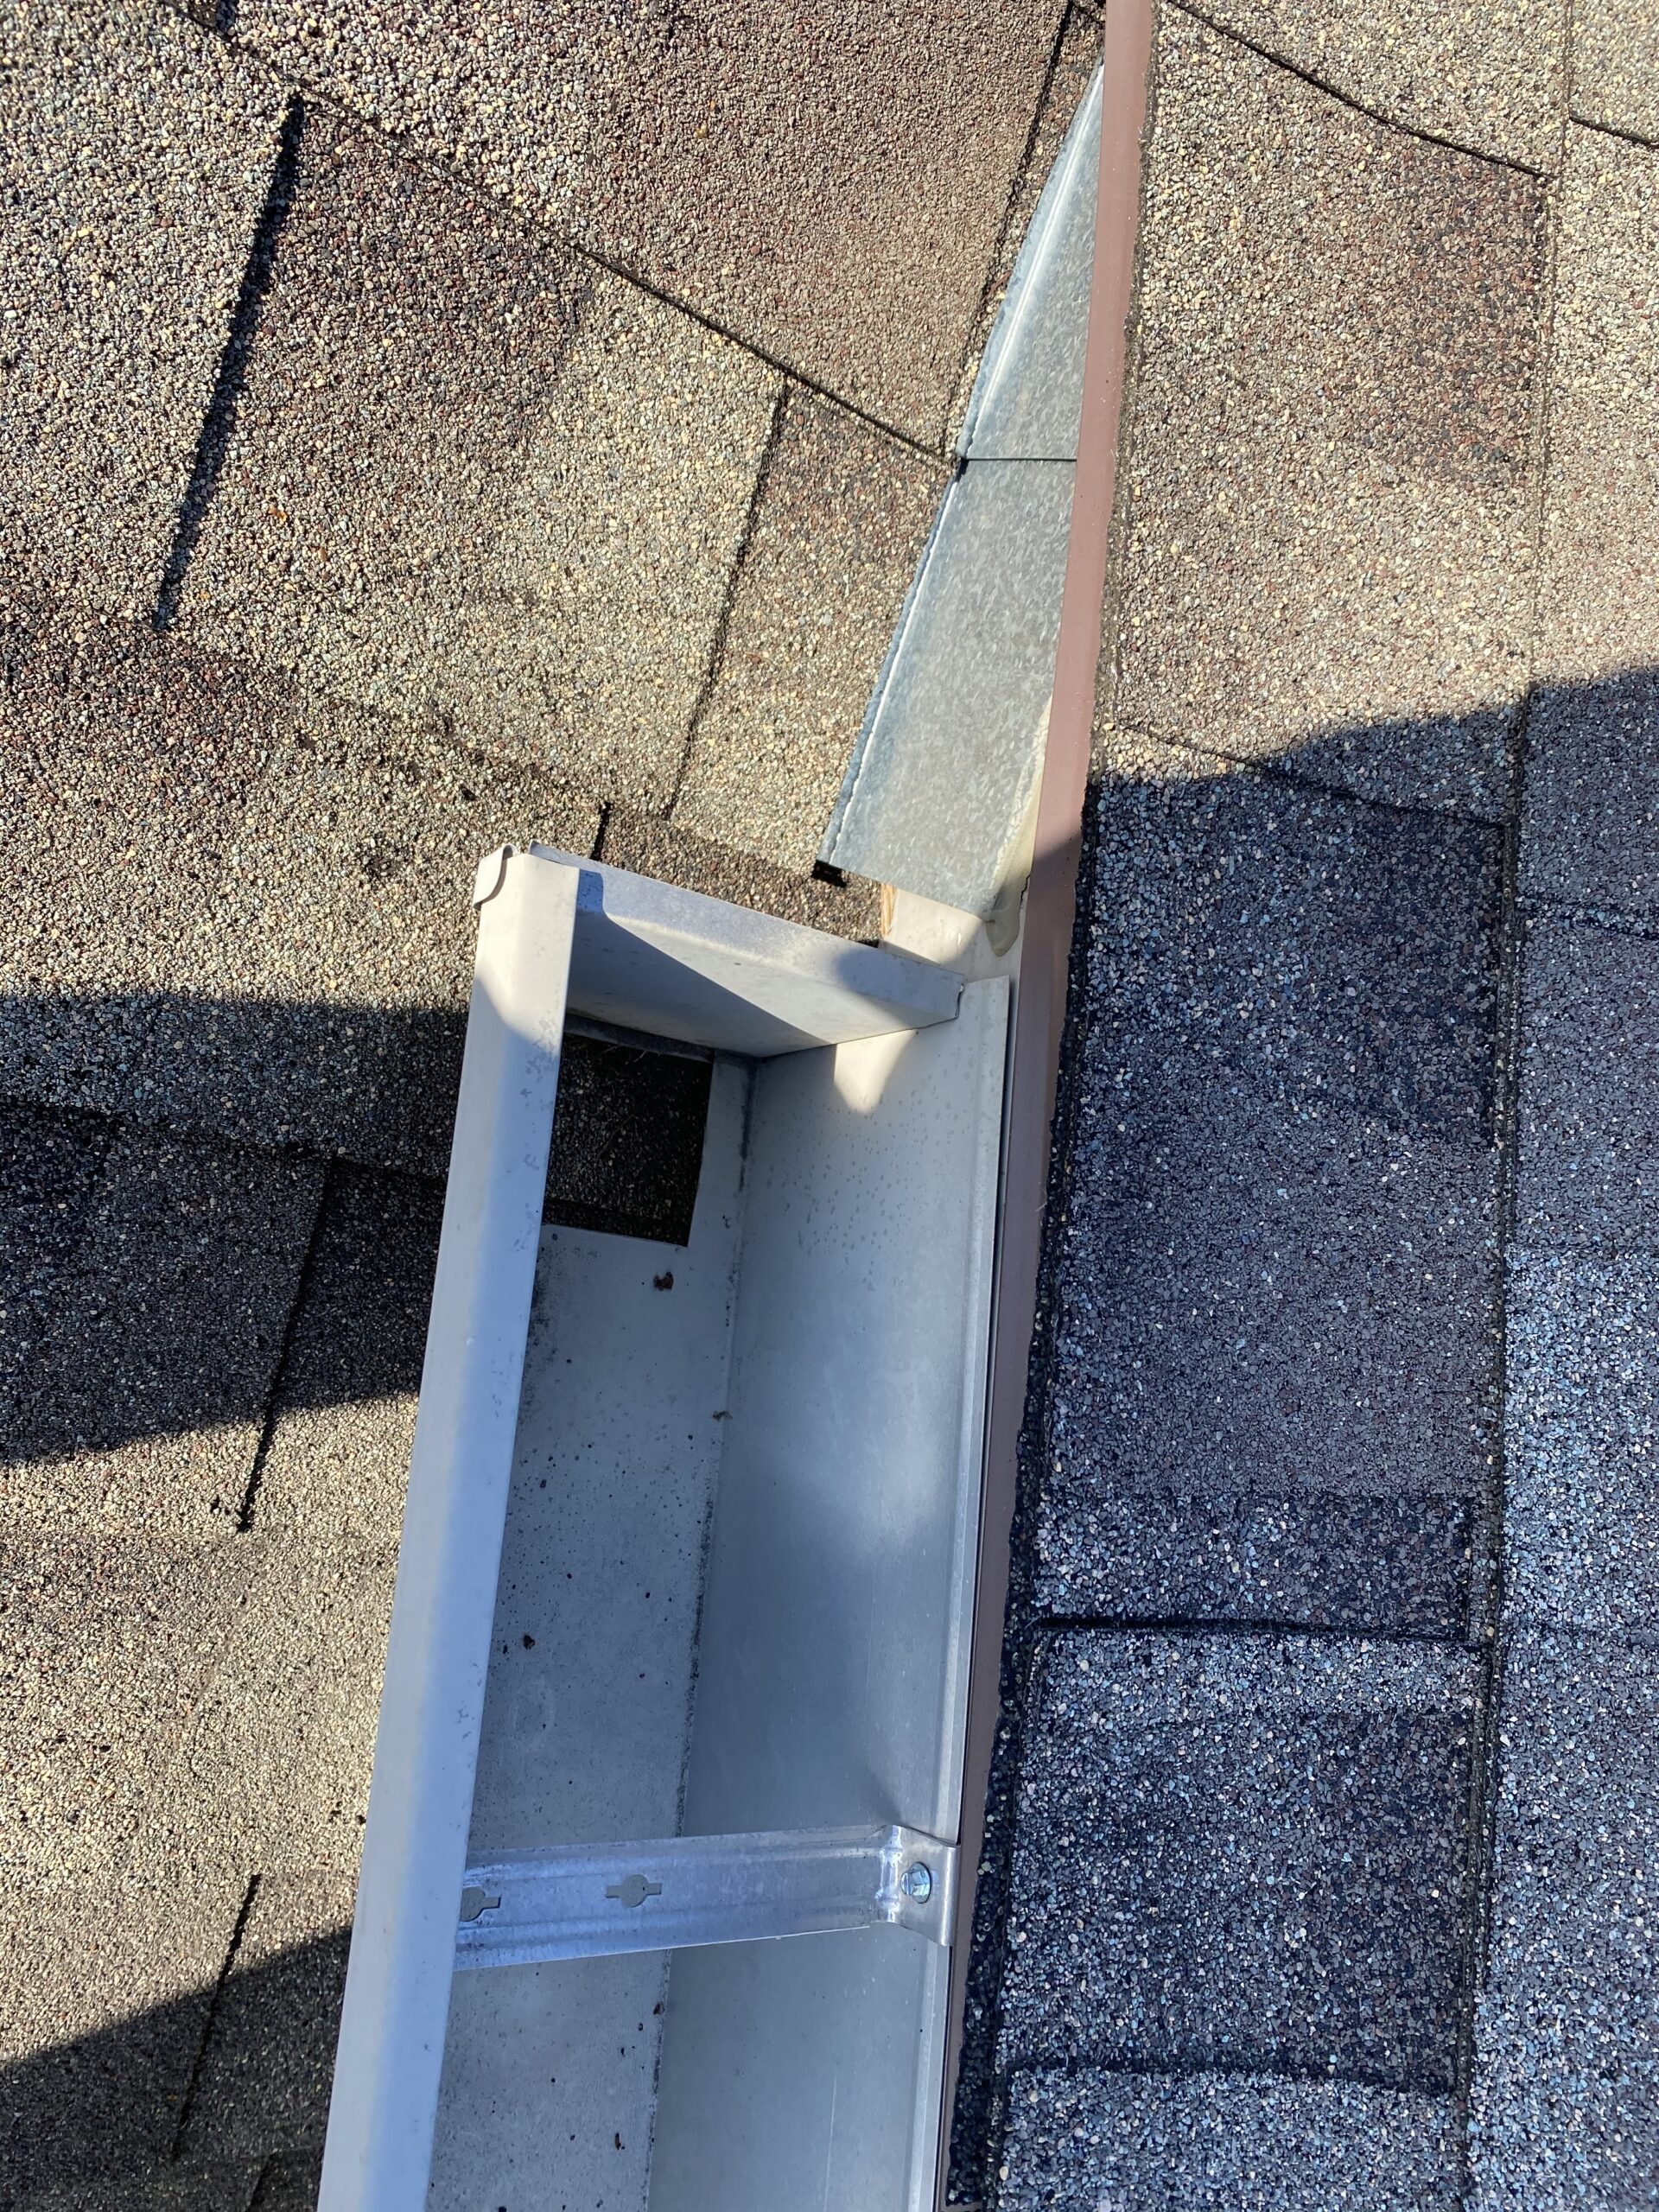 This is a picture of a wicker colored gutter with a hole in it and brow shingle roof.